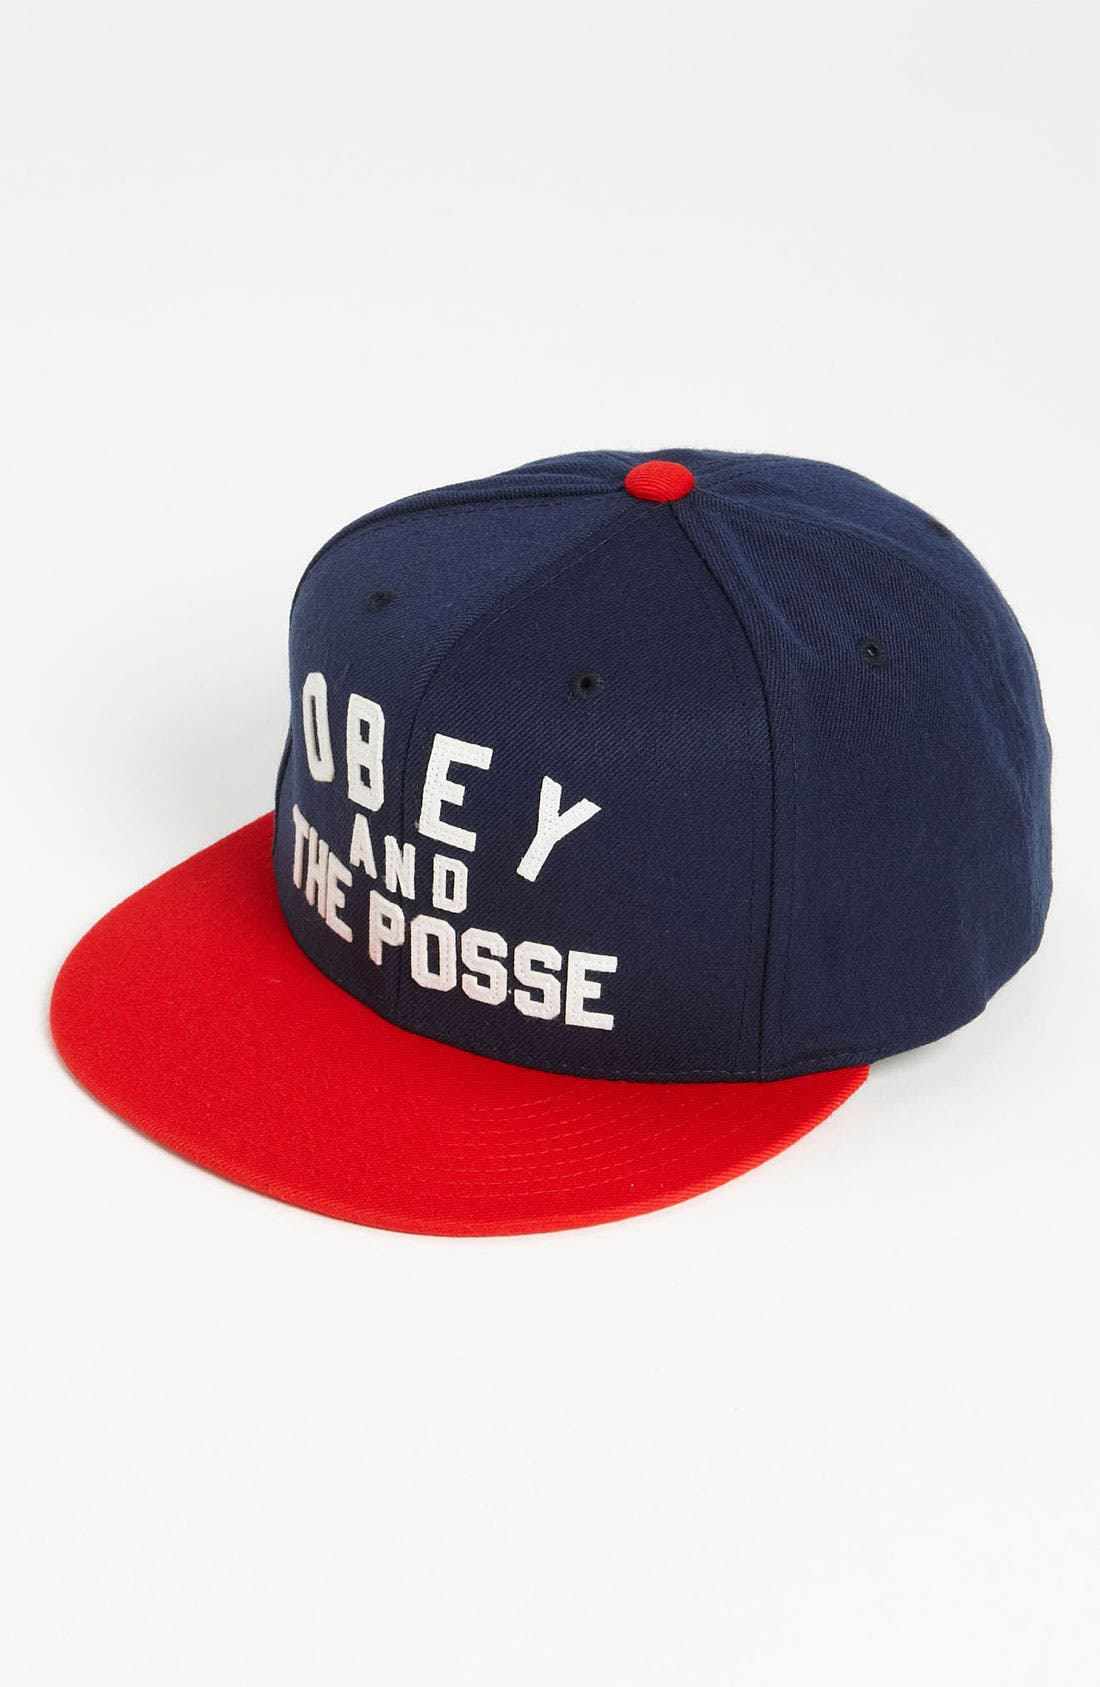 Alternate Image 1 Selected - Obey 'Obey And The Posse' Snapback Baseball Cap